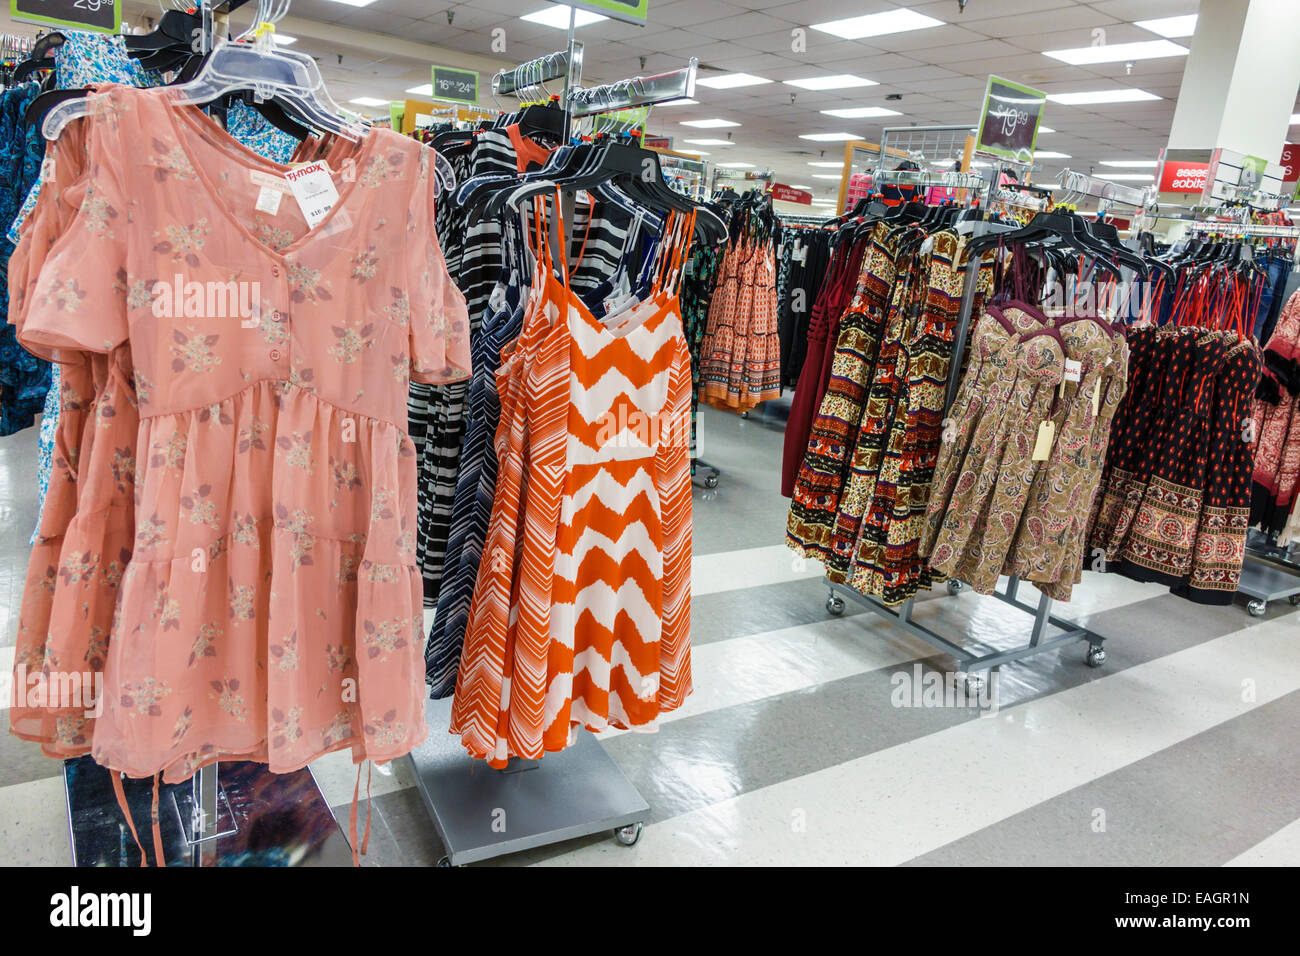 7f741358c78a Miami Florida Aventura T.J. Maxx inside shopping discount department store women's  clothing dresses sale display